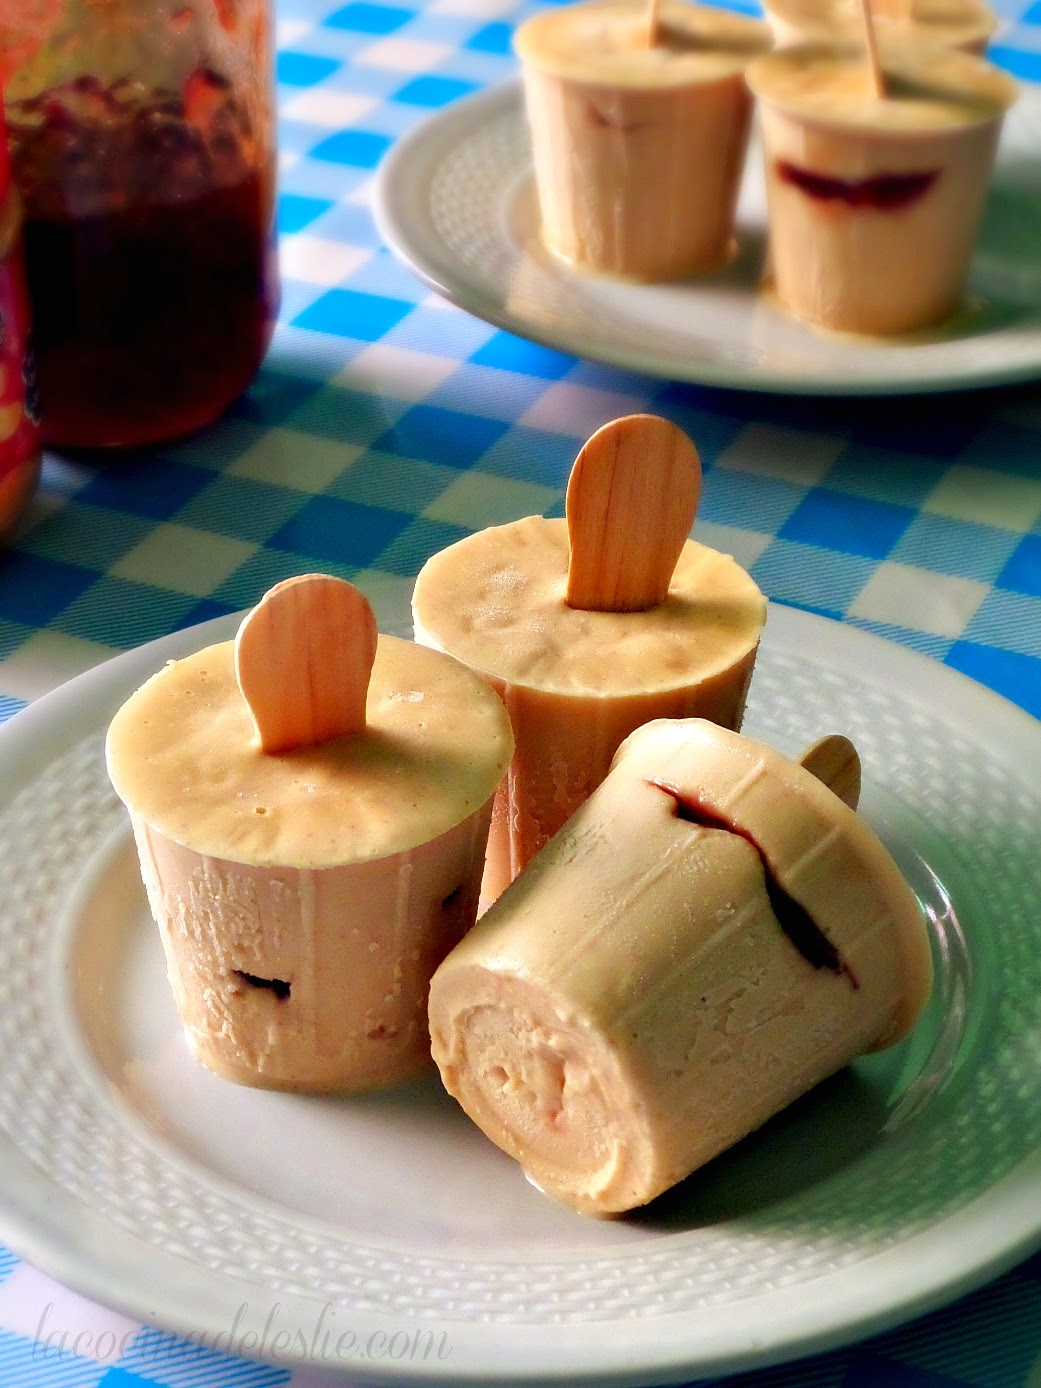 Peanut Butter and Jelly Popsicles - lacocinadeleslie.com